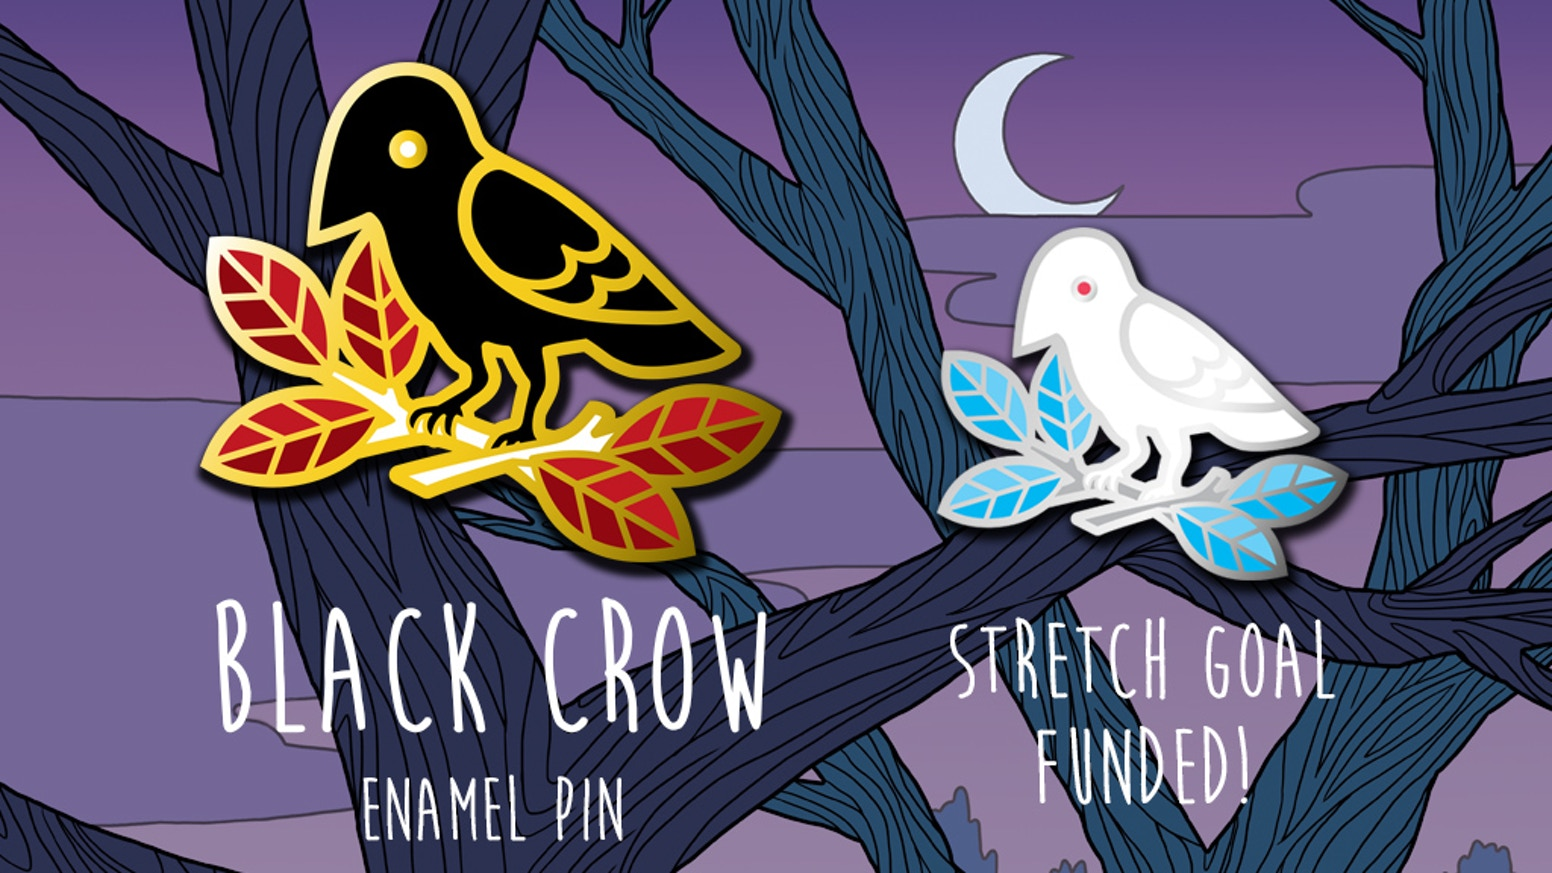 Get yourself a stylish crow enamel pin and a matching print full of mystery.